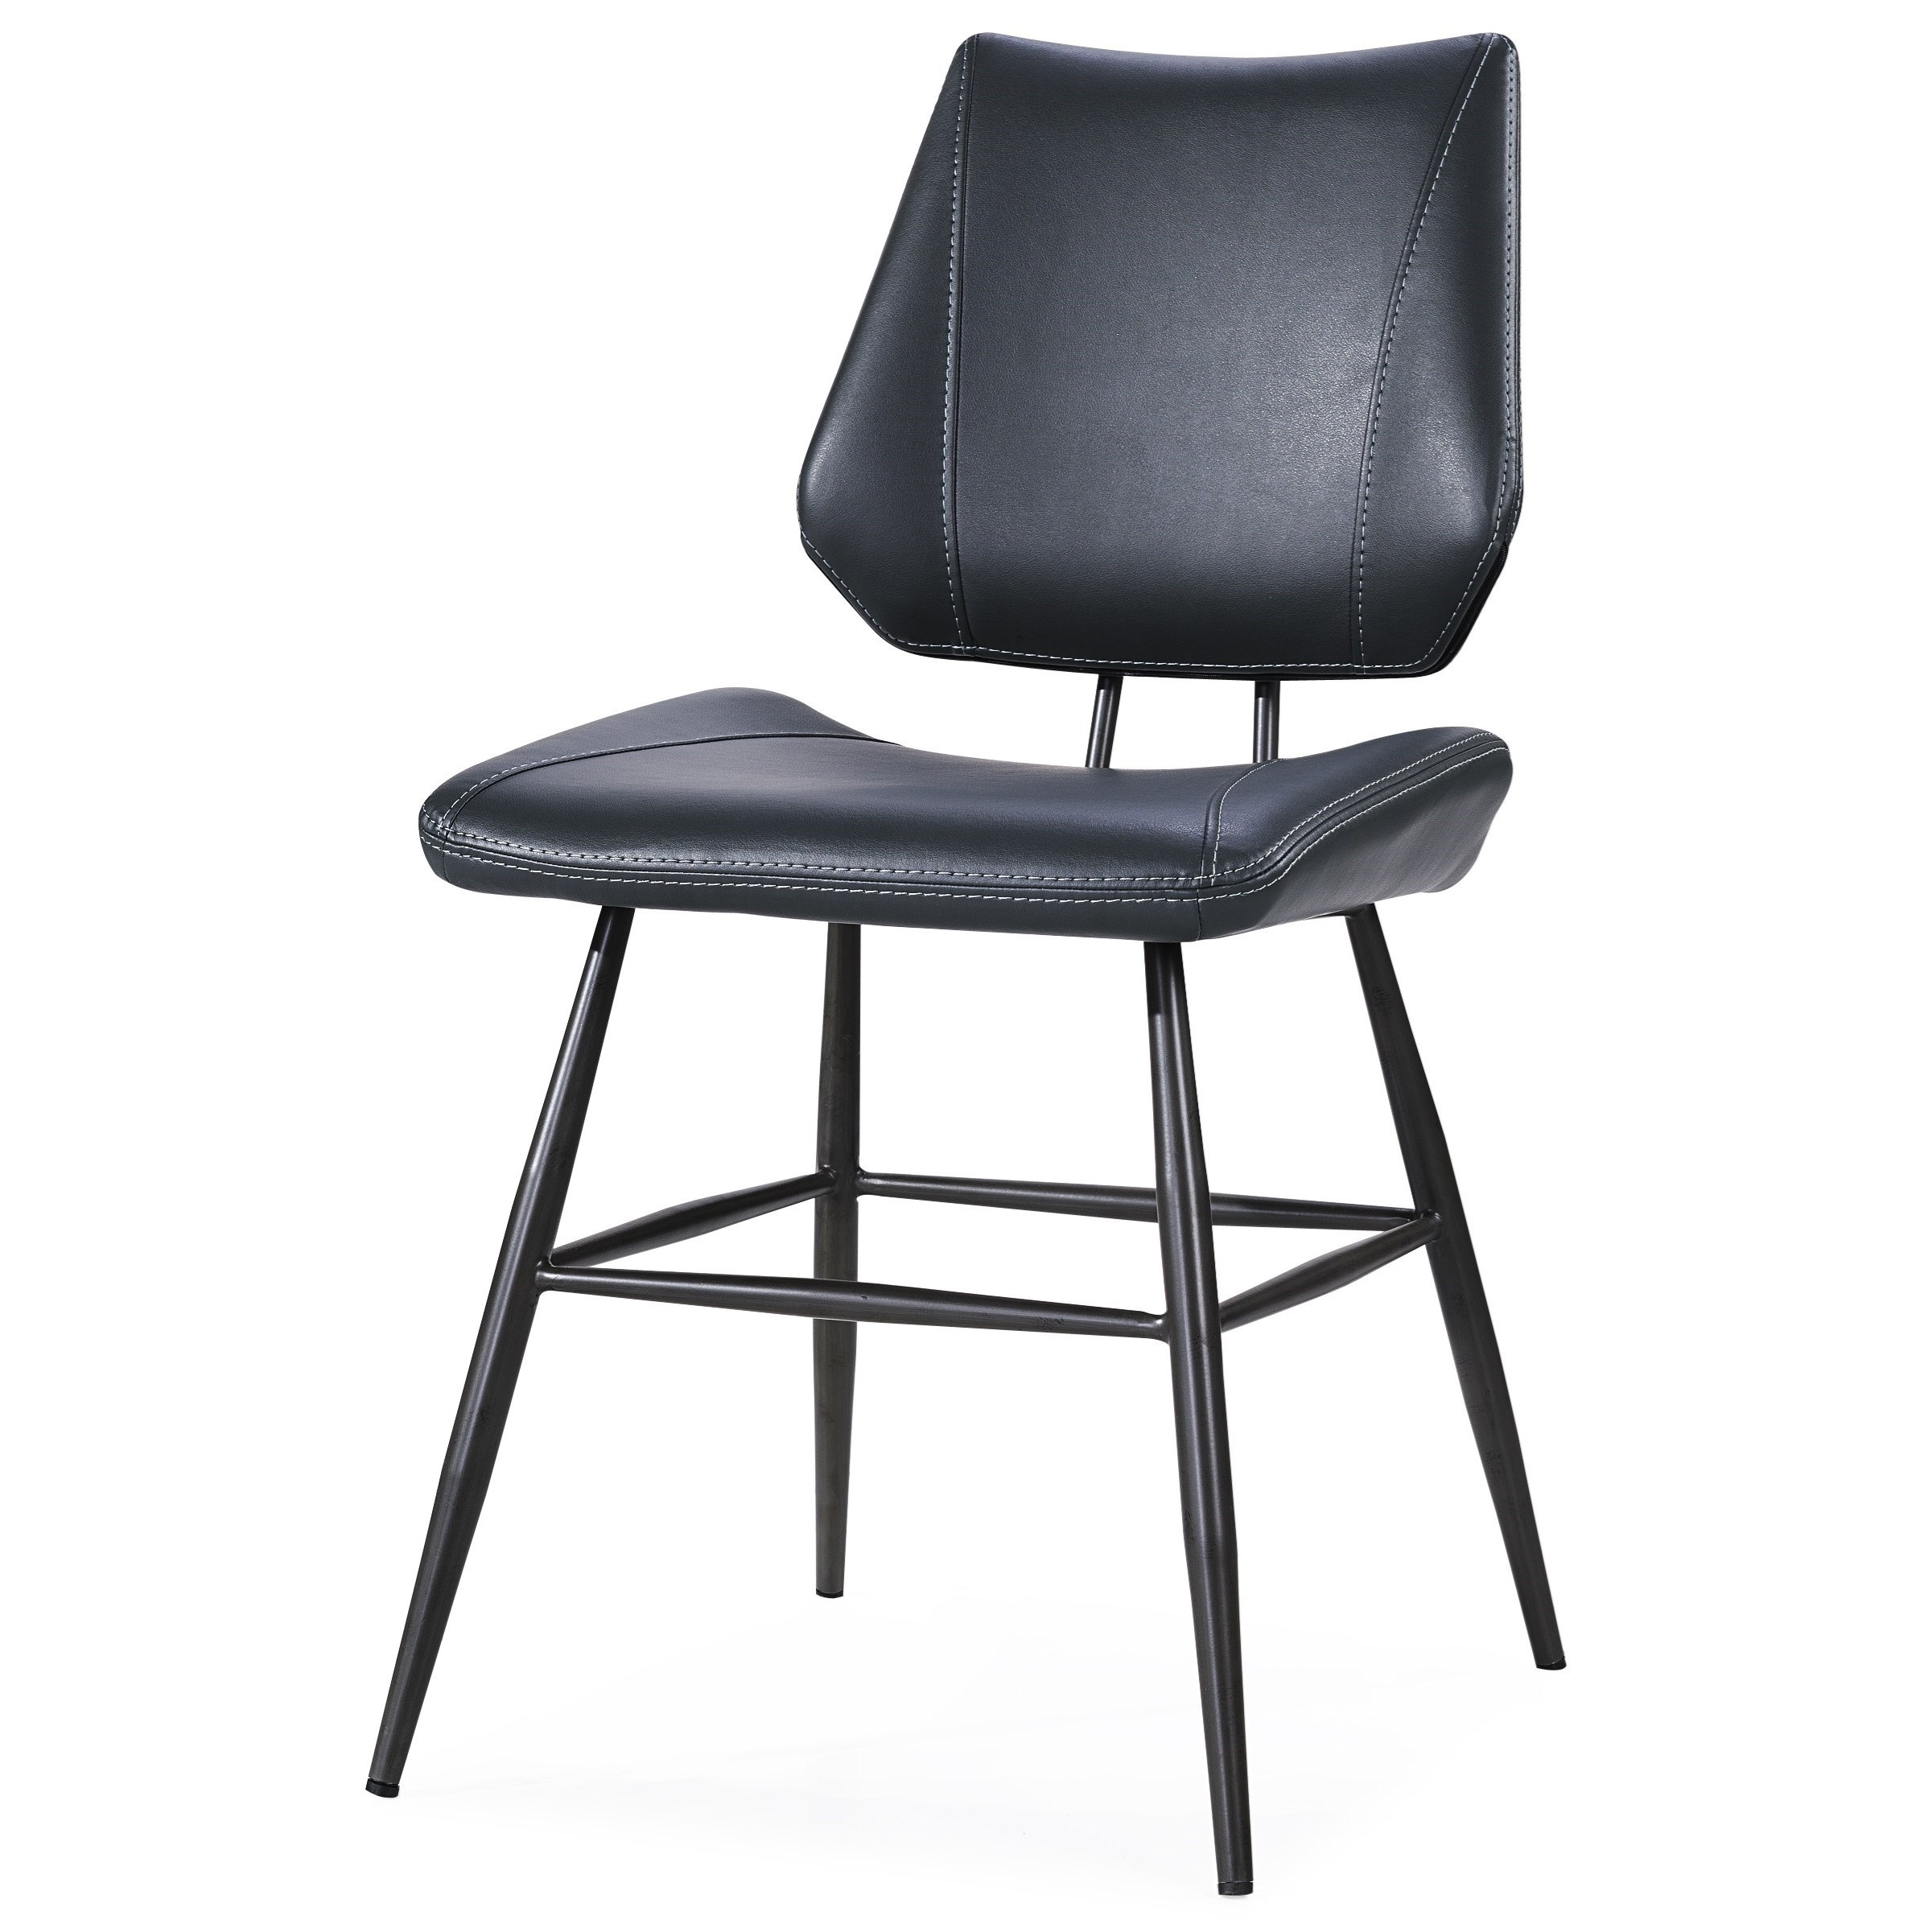 Crossroads Vinson Sculpted Modern Dining Chair in Cobal by Modus International at Del Sol Furniture